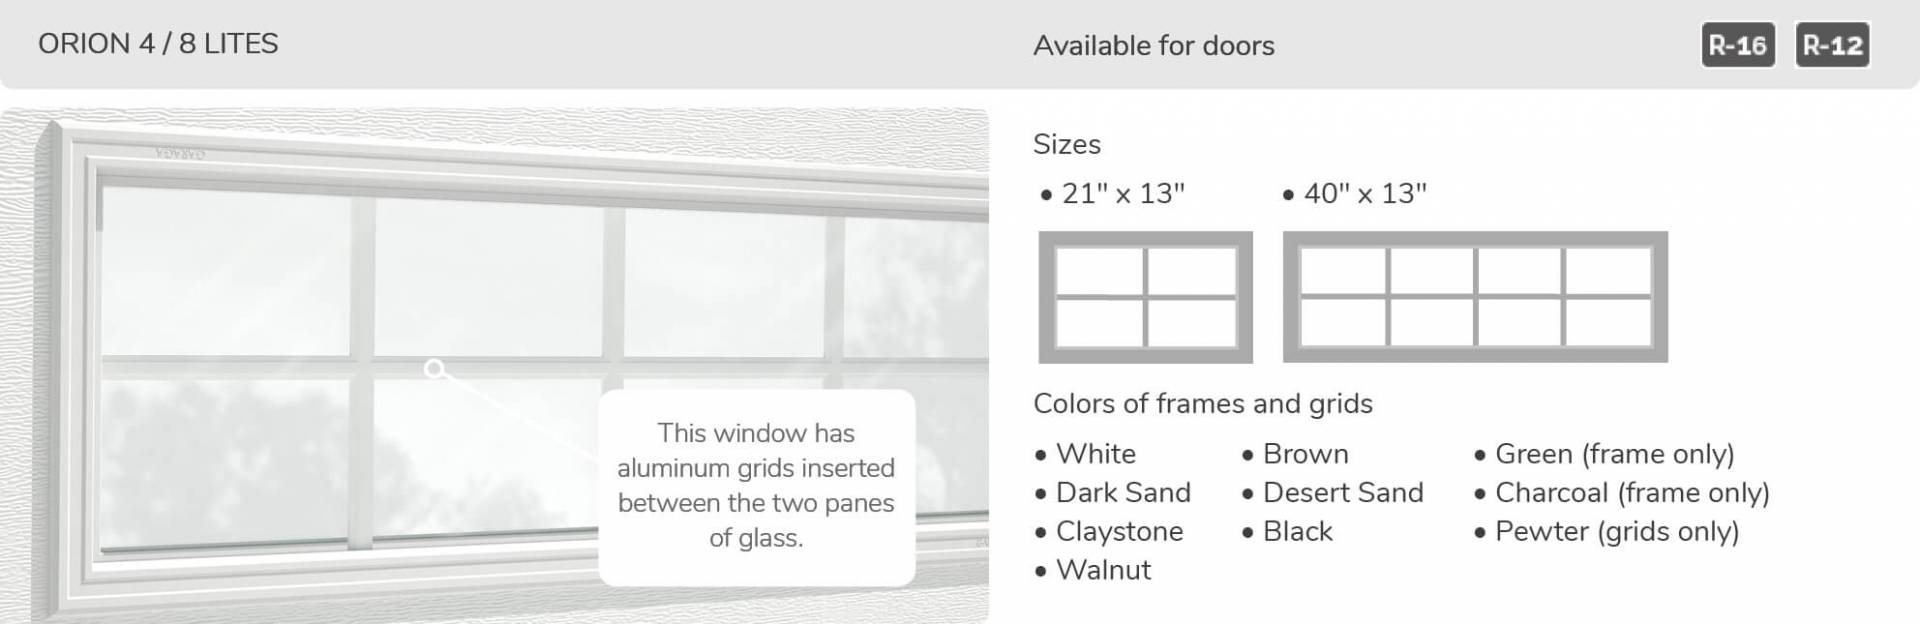 Orion 4 and 8 lite windows, 21' x 13' and 40' x 13', available for door R-16, R-12